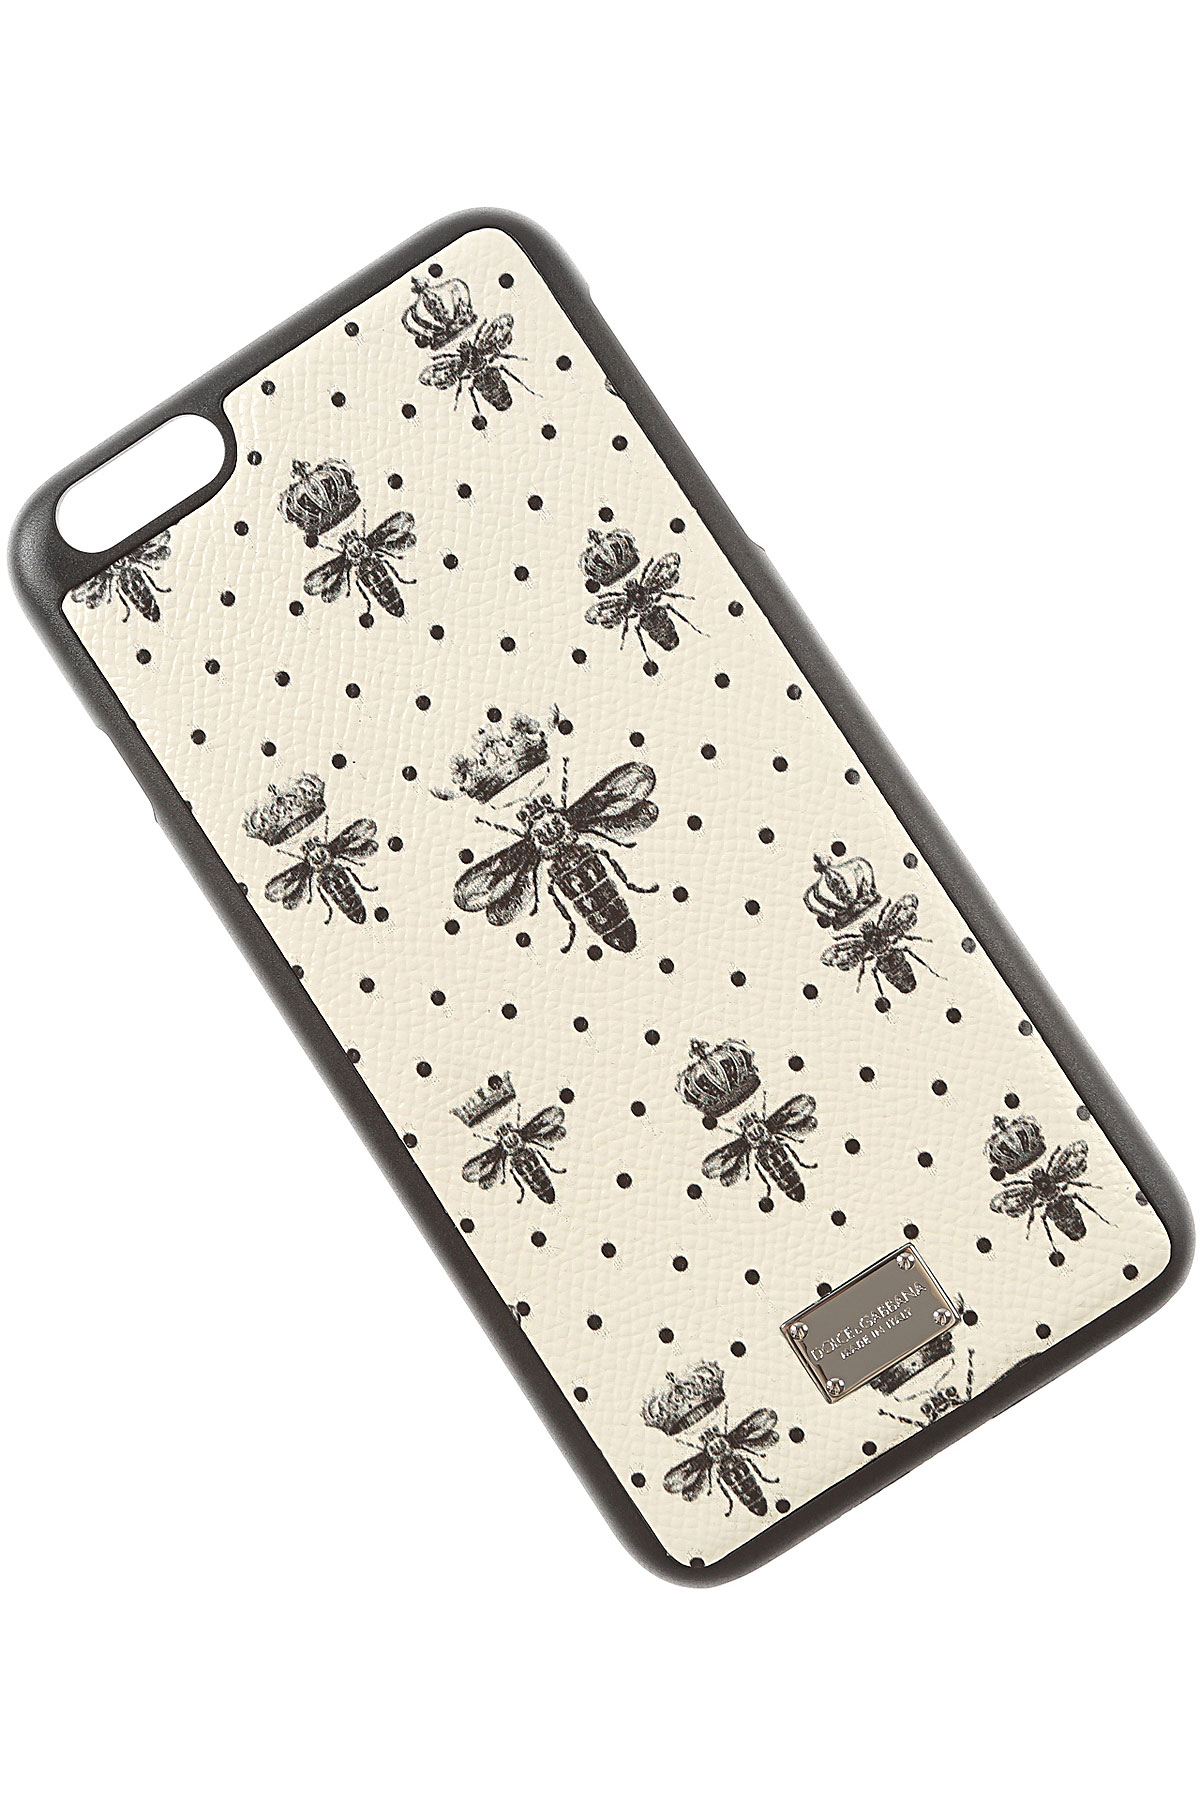 Image of Dolce & Gabbana iPhone Cases On Sale in Outlet, Iphone 6 Plus Case, Cream, Leather, 2017